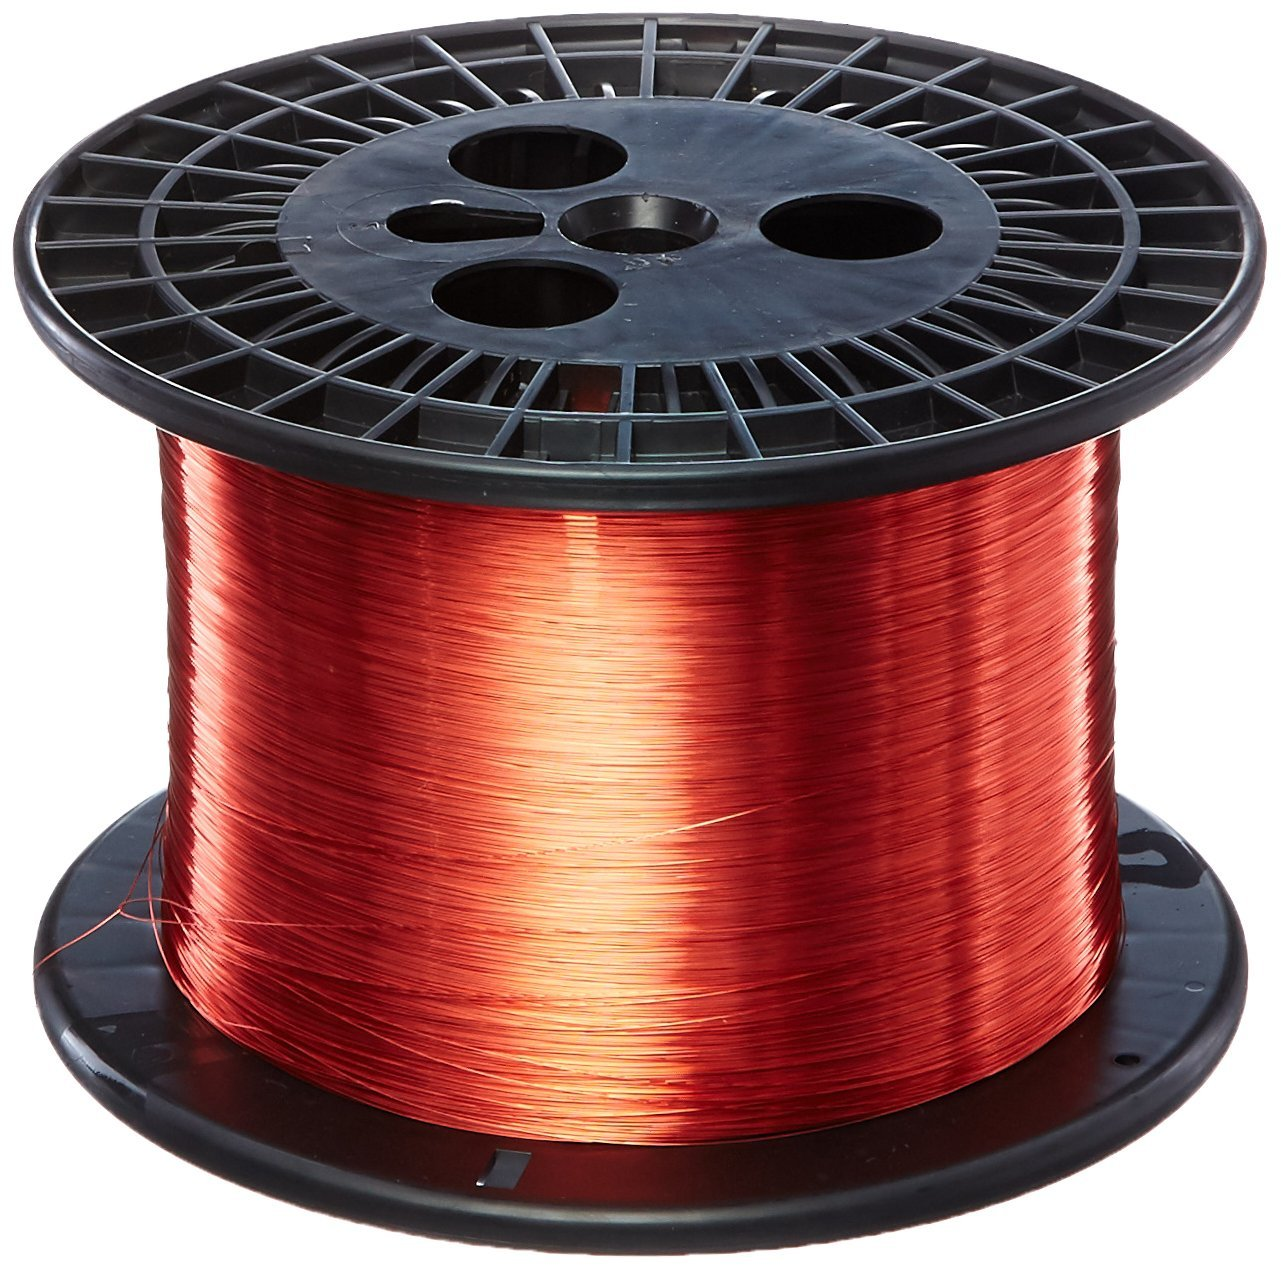 Remington Industries 32SNS 32 AWG Magnet Wire, Enameled Copper Wire, 5.0 lb, 0.0087'' Diameter, 25015' Length, Red